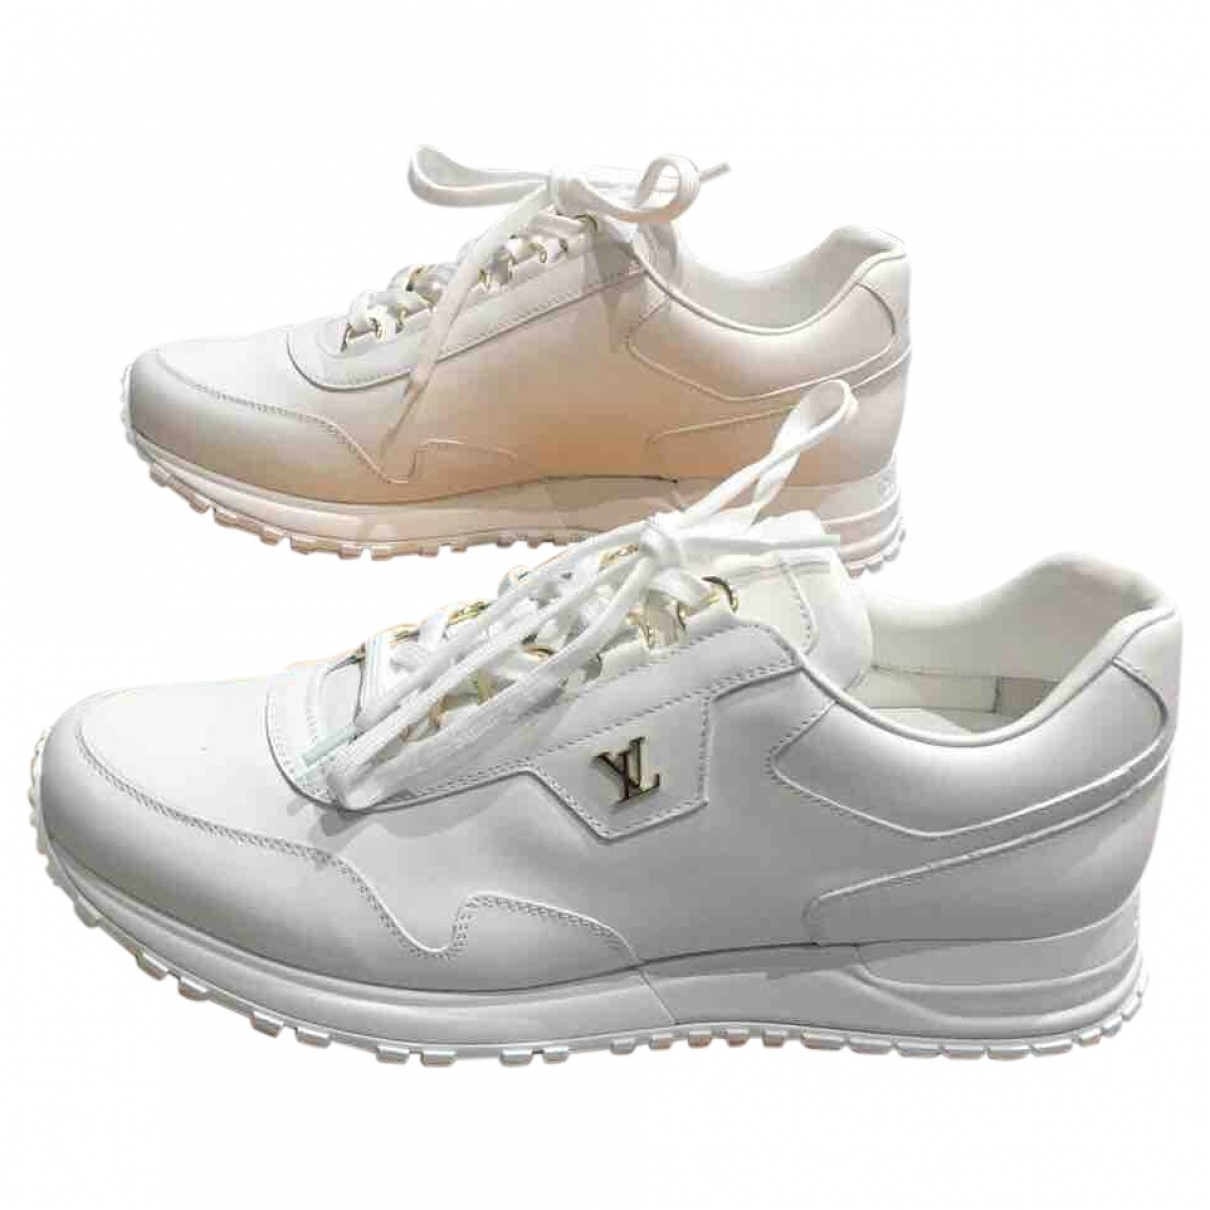 Louis Vuitton - Baskets Run Away pour homme en cuir - blanc